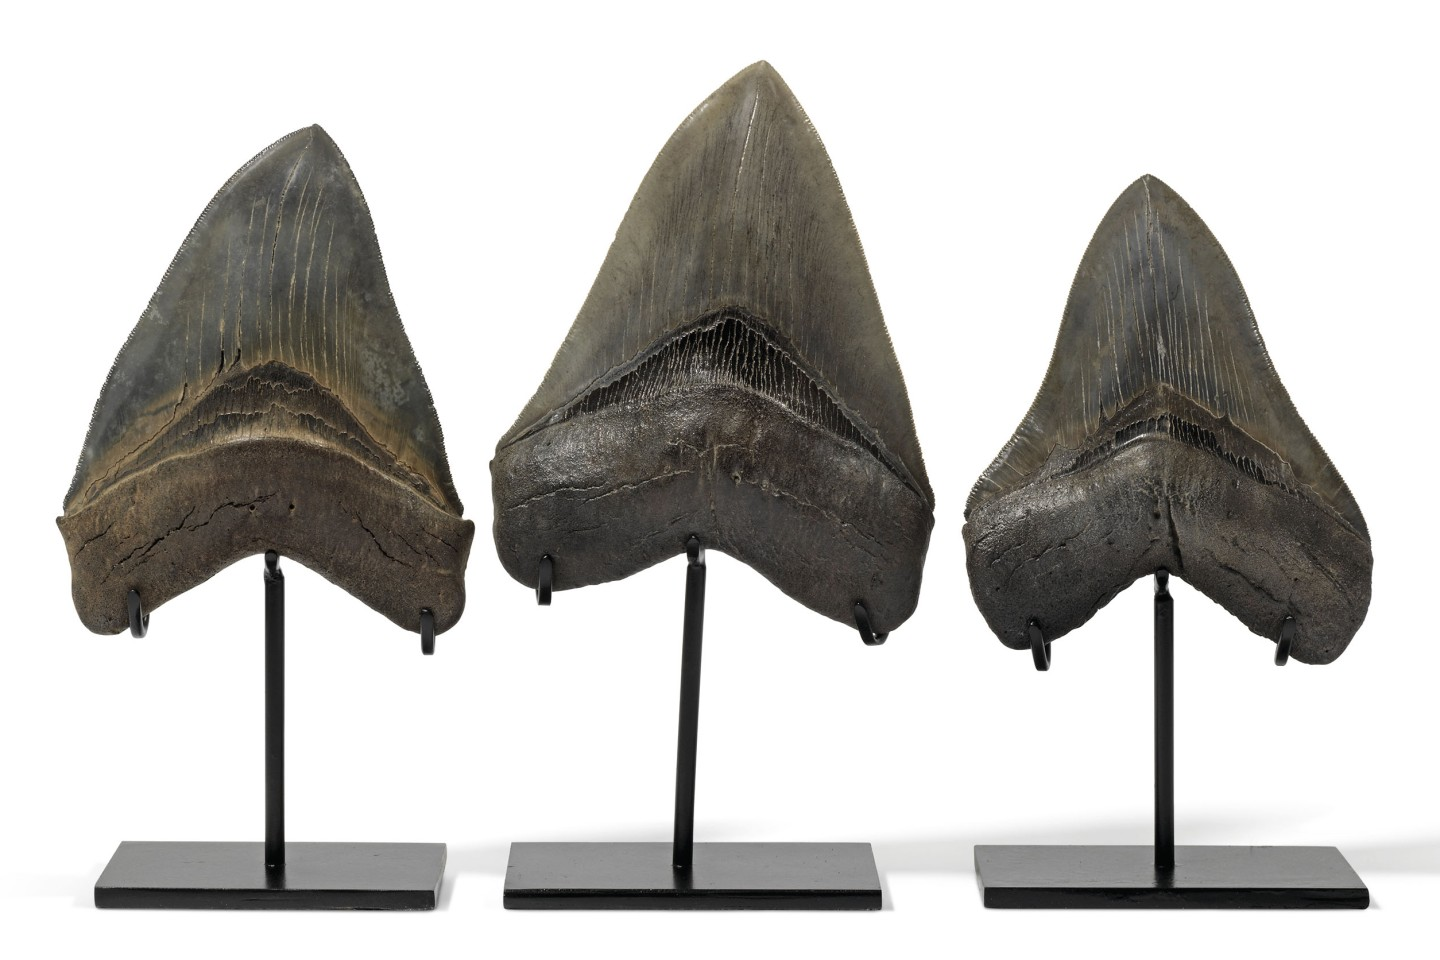 Three teeth from the giant Carcharocles megalodon, being 5½, 4⅞ & 5⅛ inches long respectively. From the Langhian (16-14 million years ago) period, these teeth, with their sharp serrations are an indication of the lethality of the largest and most powerful predator ever to stalk the oceans of the world. The custom stands are approximately 8 ines (20 cm) tall.